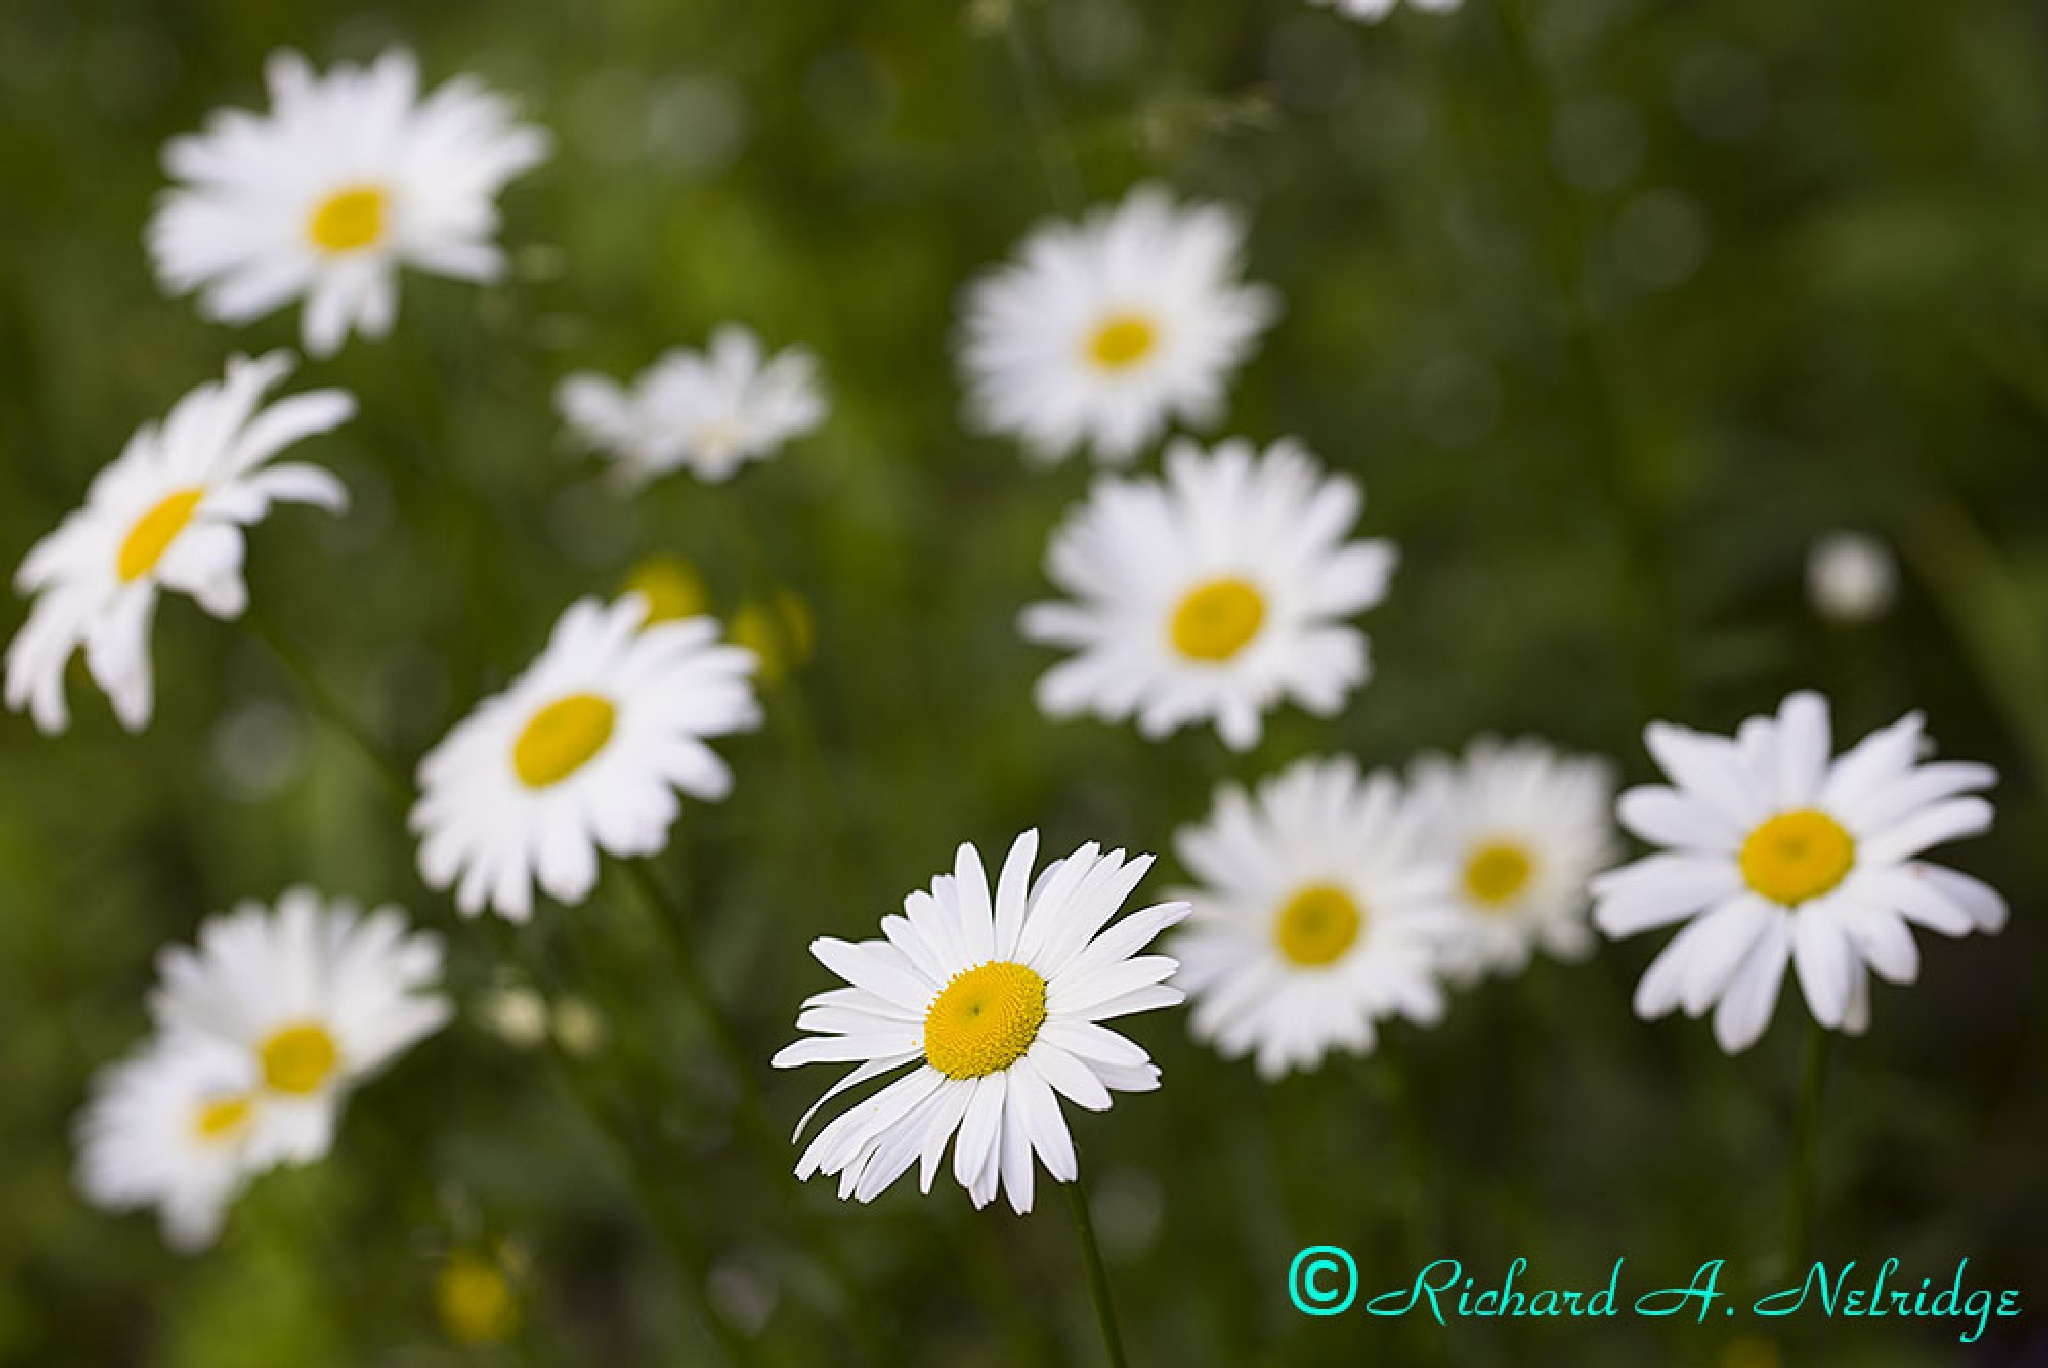 Daisies, Acadia National Park by Richard Nelridge